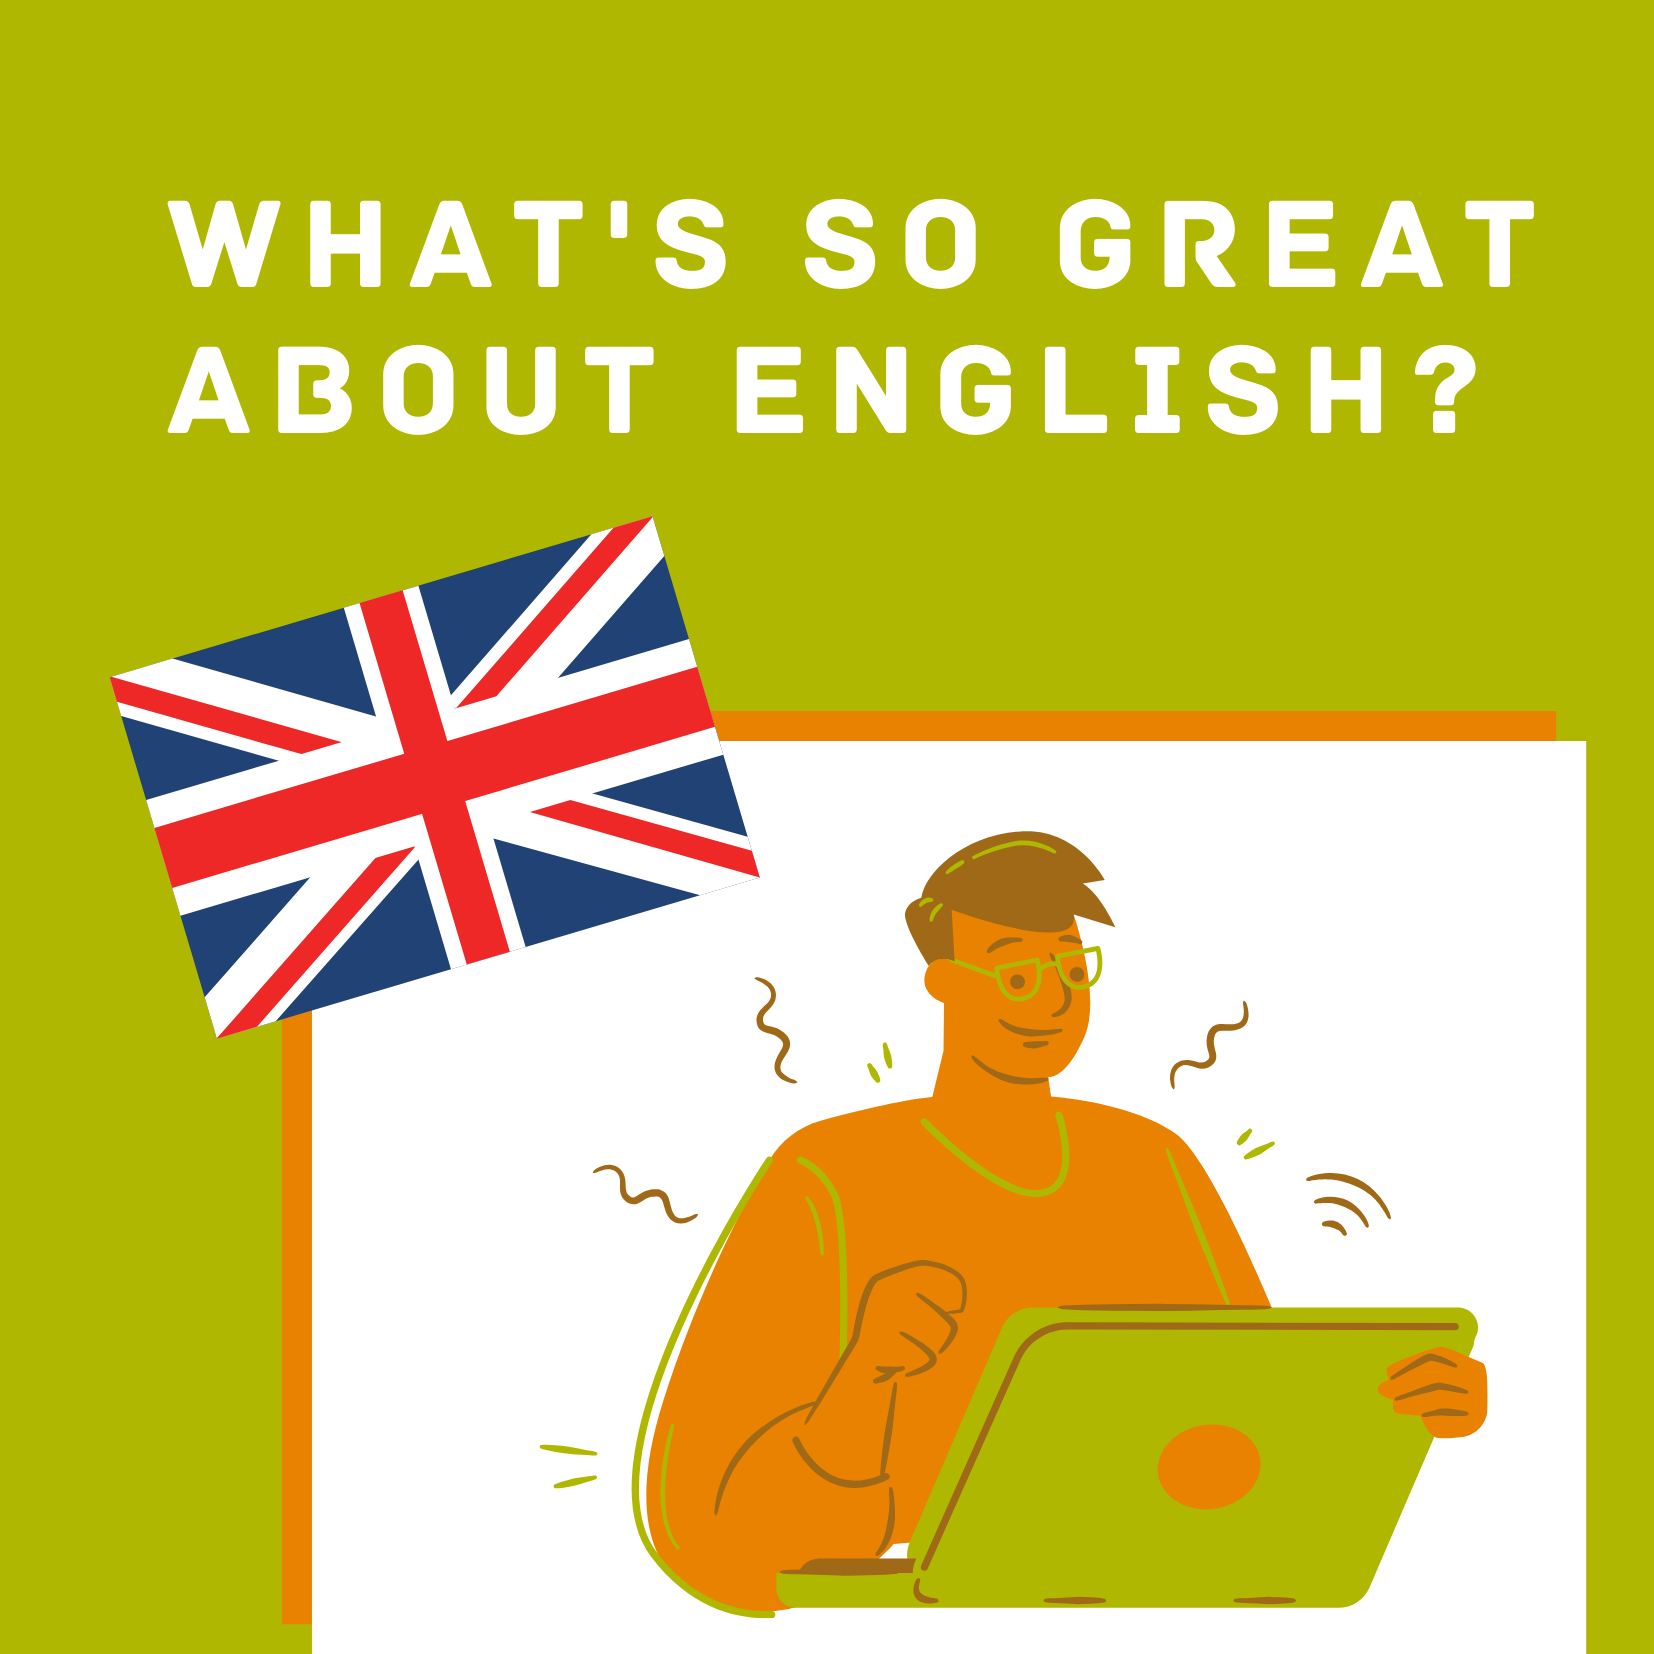 What's so great about English blog